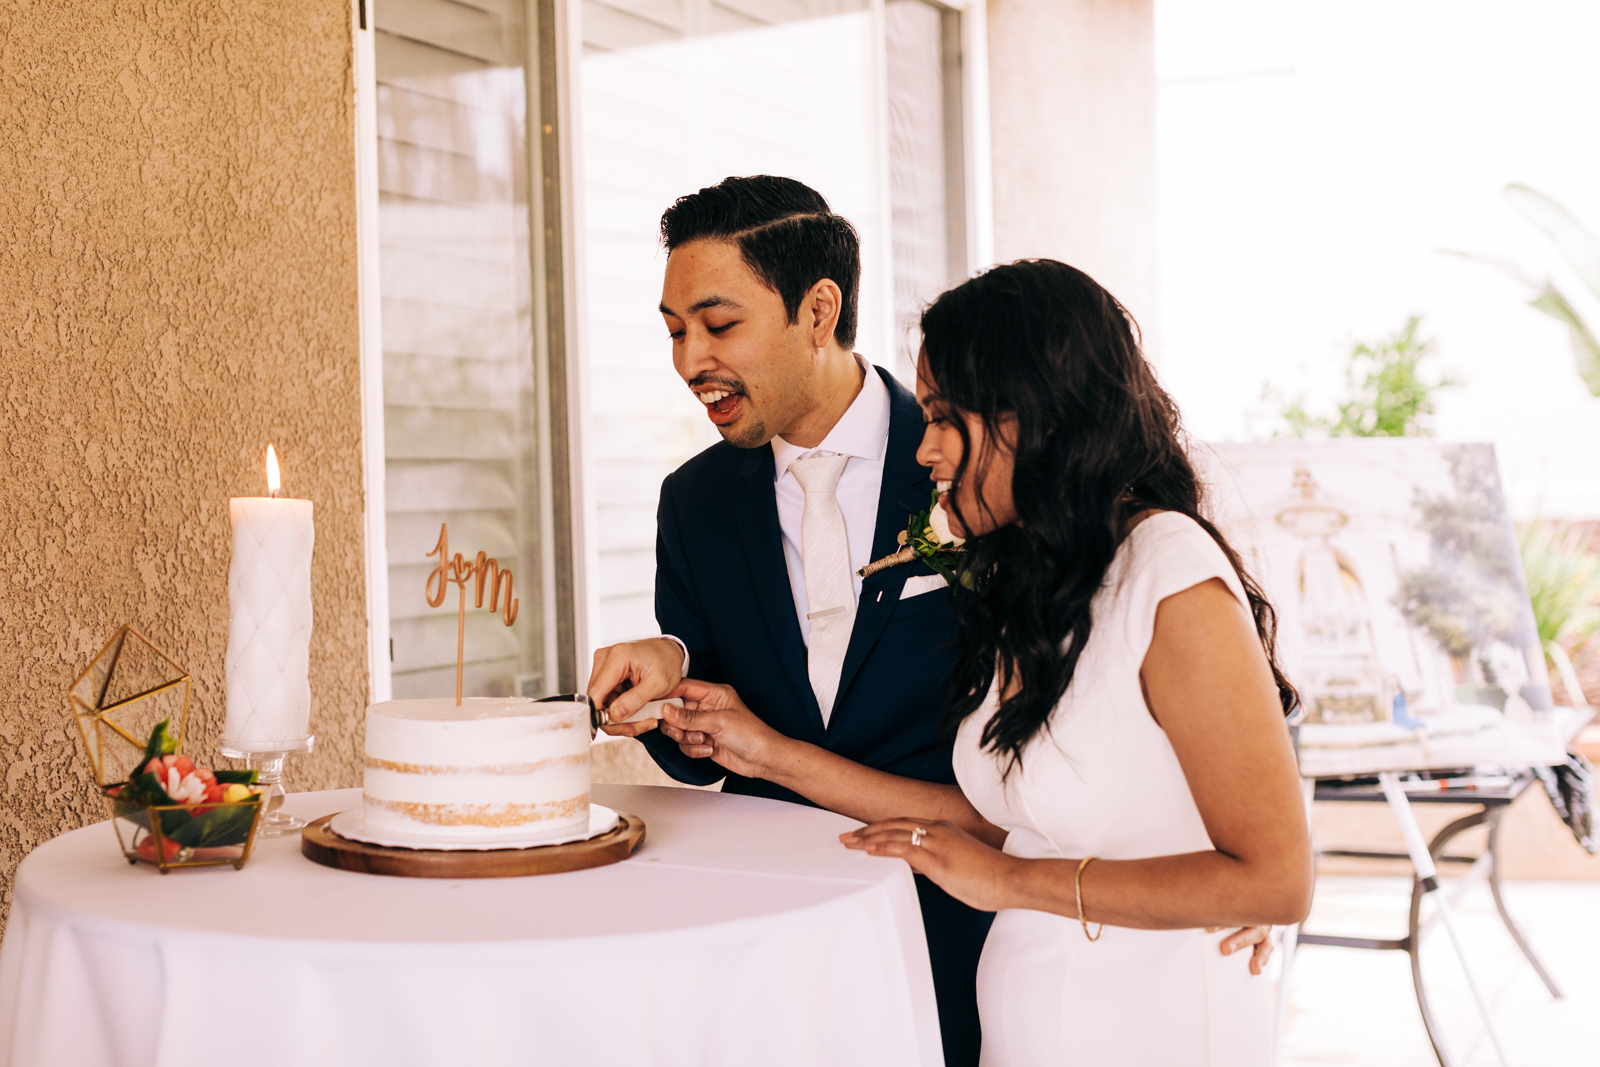 A bride and groom cutting their cake during their micro-wedding in Southern California.